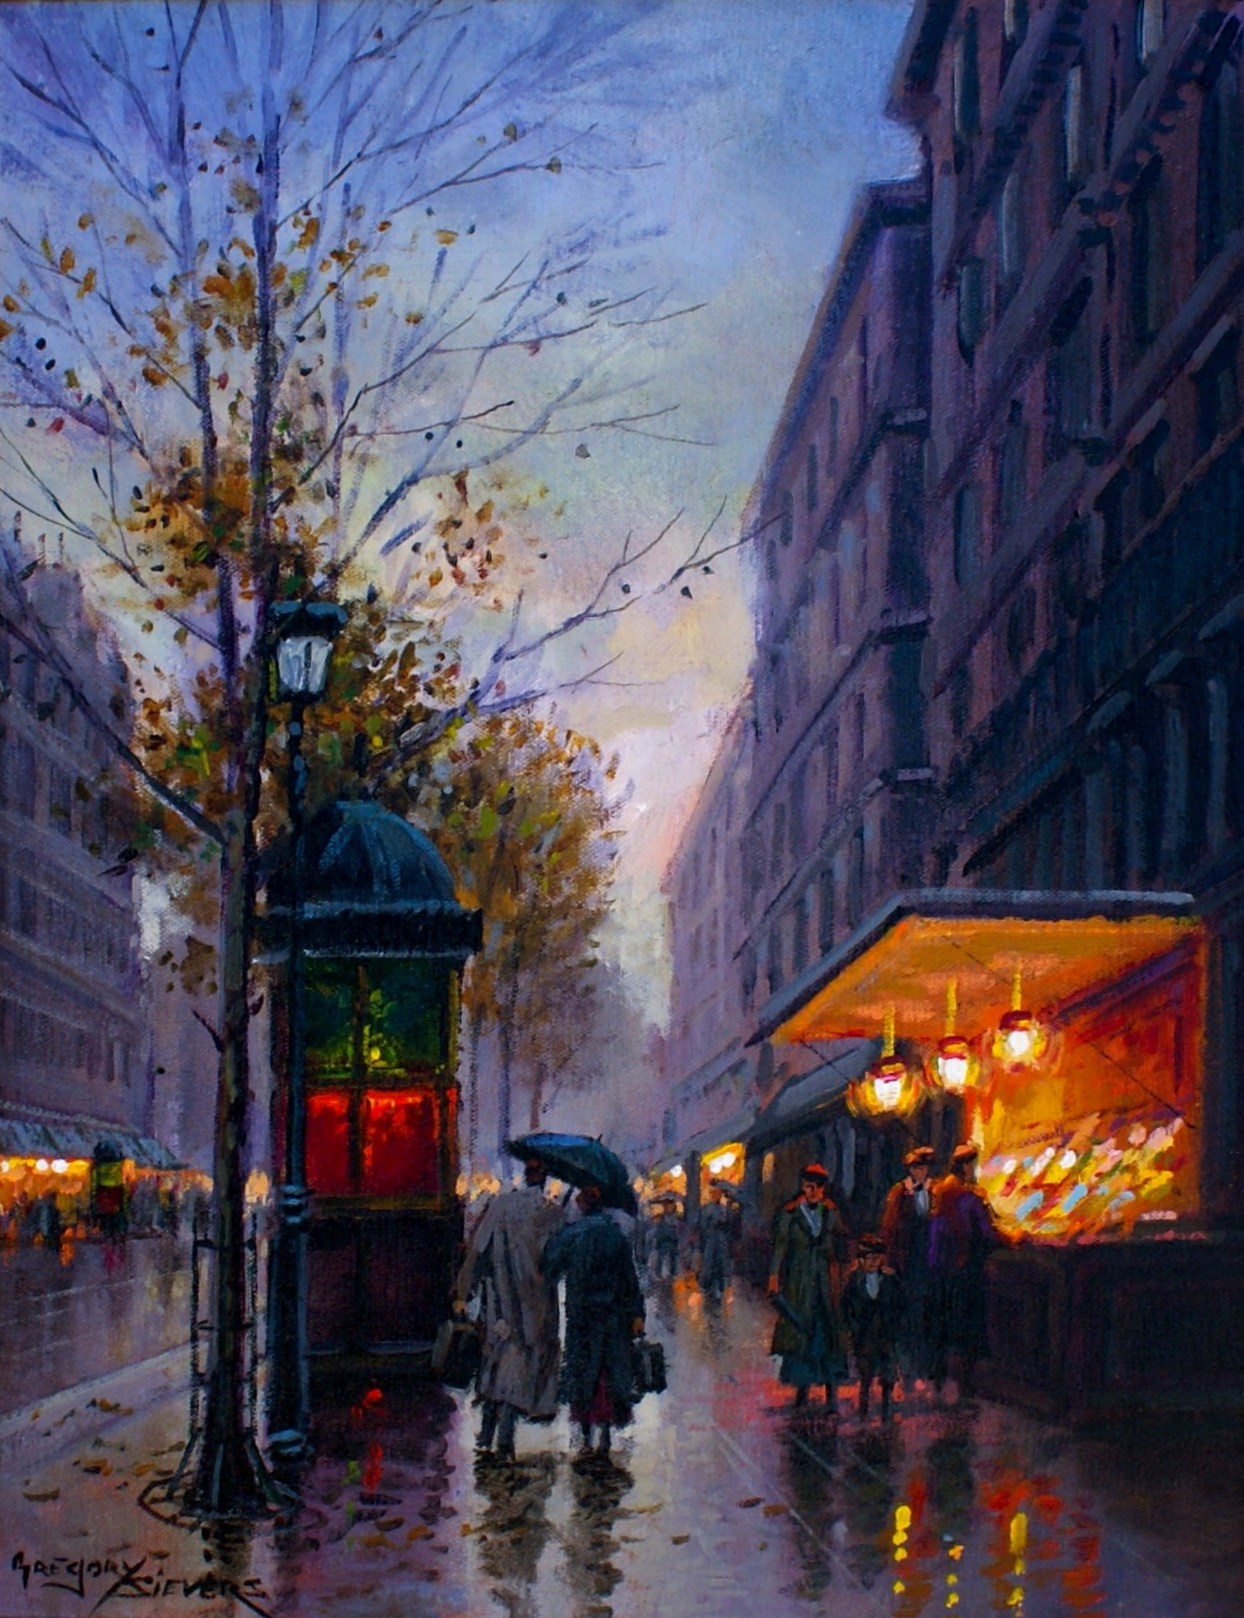 Artist: Gregory Sievers Title: Arrival in Paris Size: 14in x 18in Framed: Yes Medium: Oil on Canvas